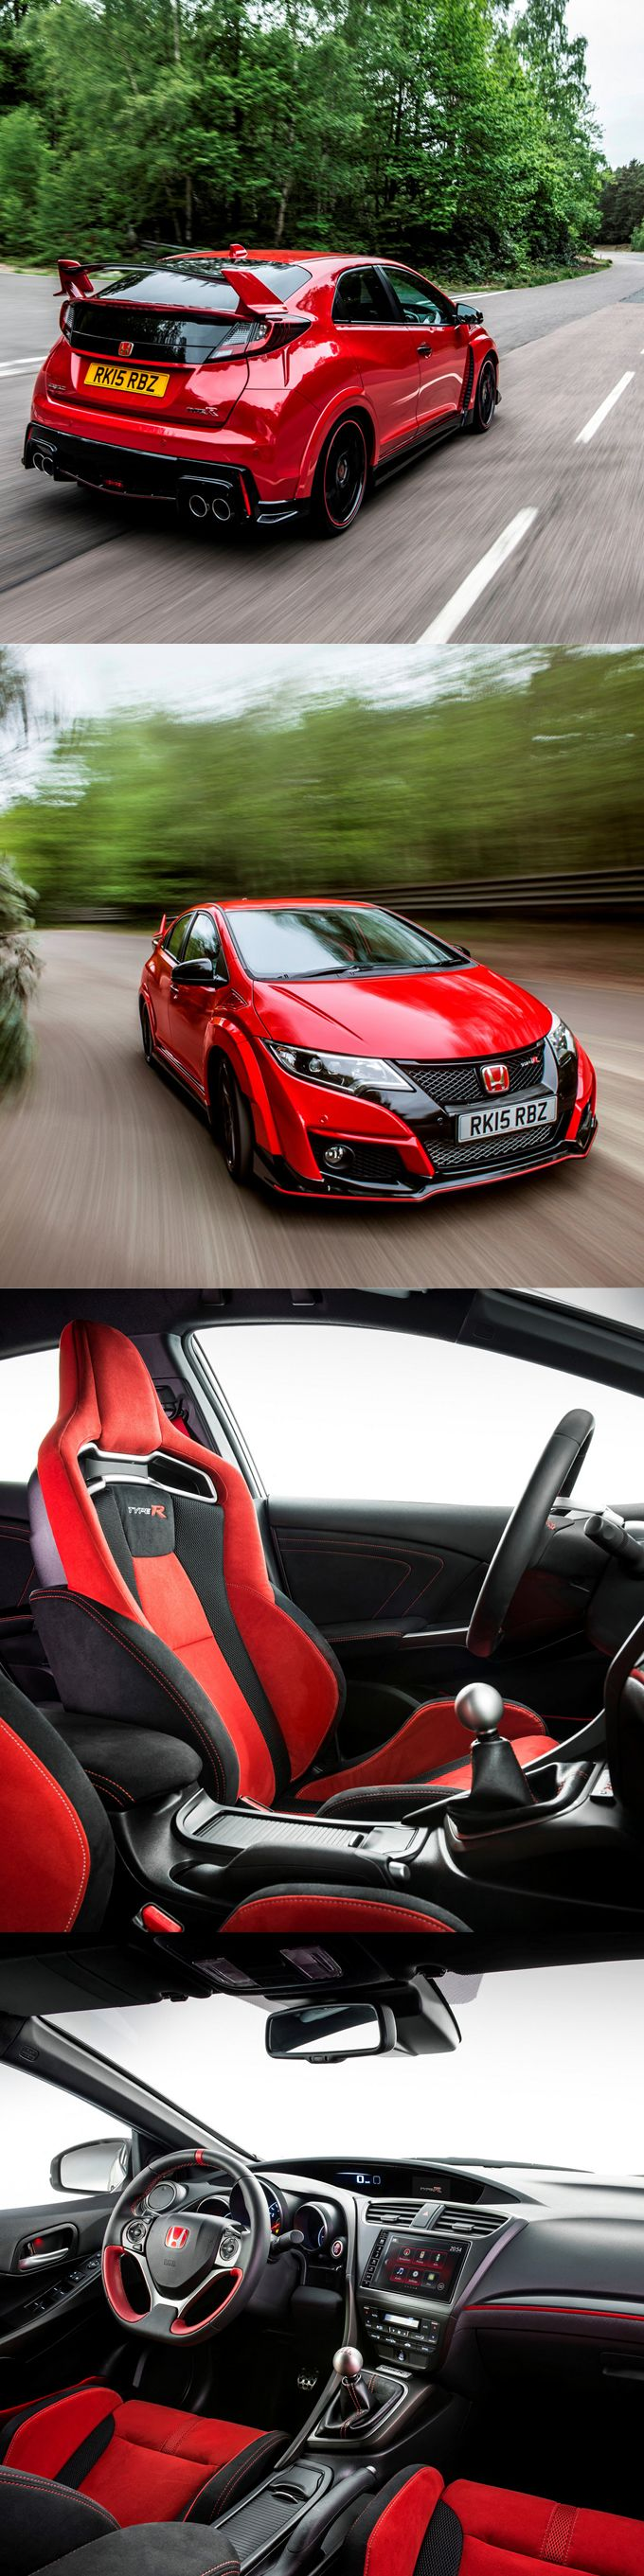 2015 Honda Civic Type R / FK2 / 306hp / red / Japan / hot hatch / 17-149